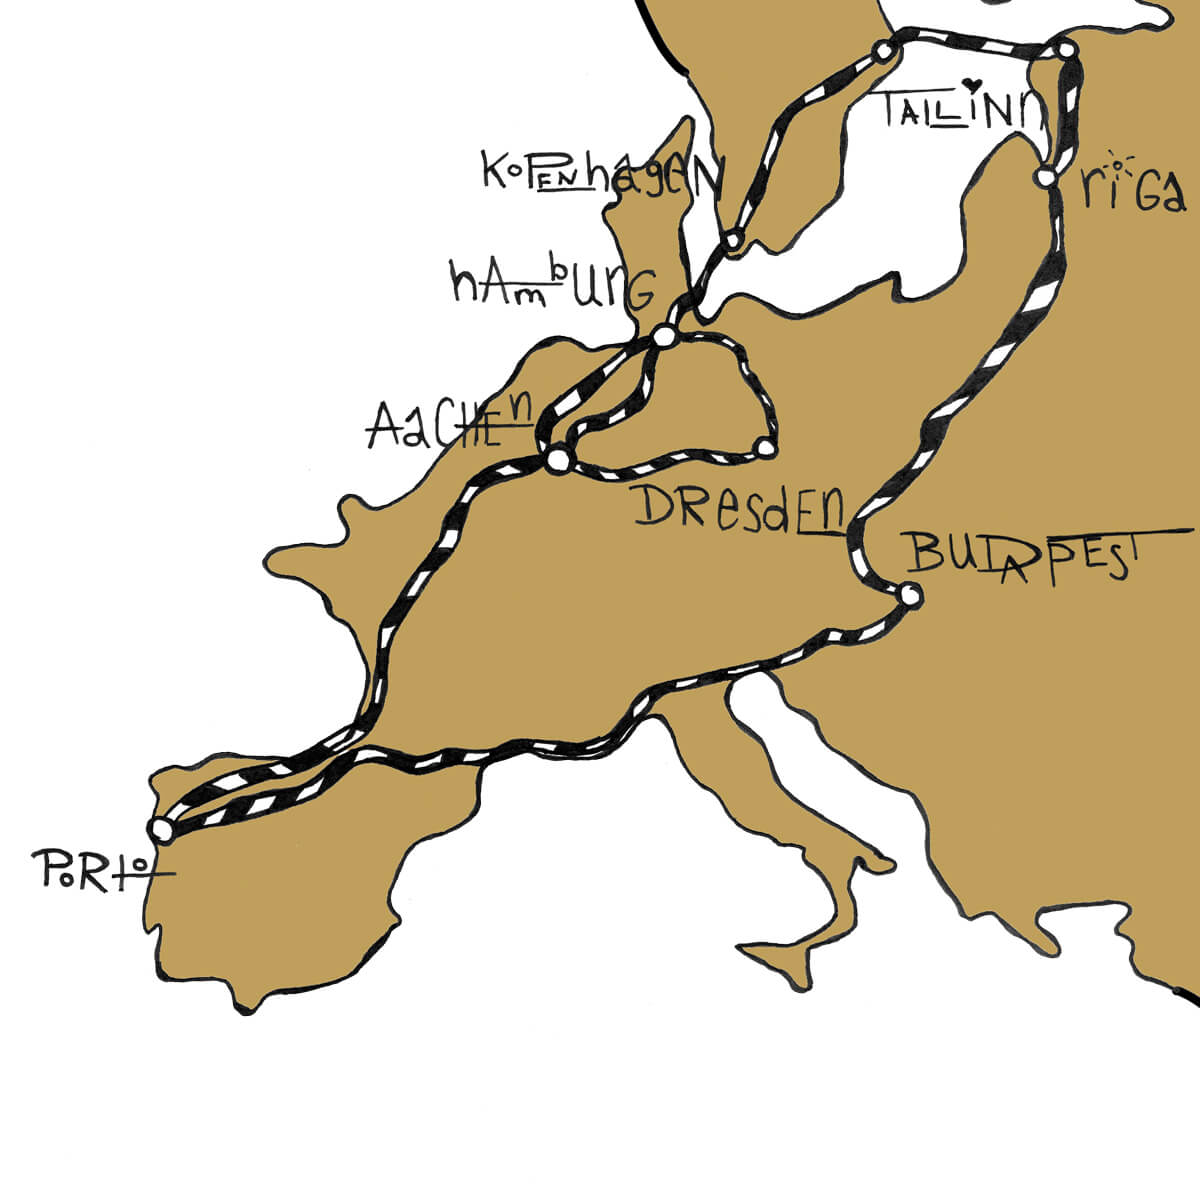 Europa Roadtrip